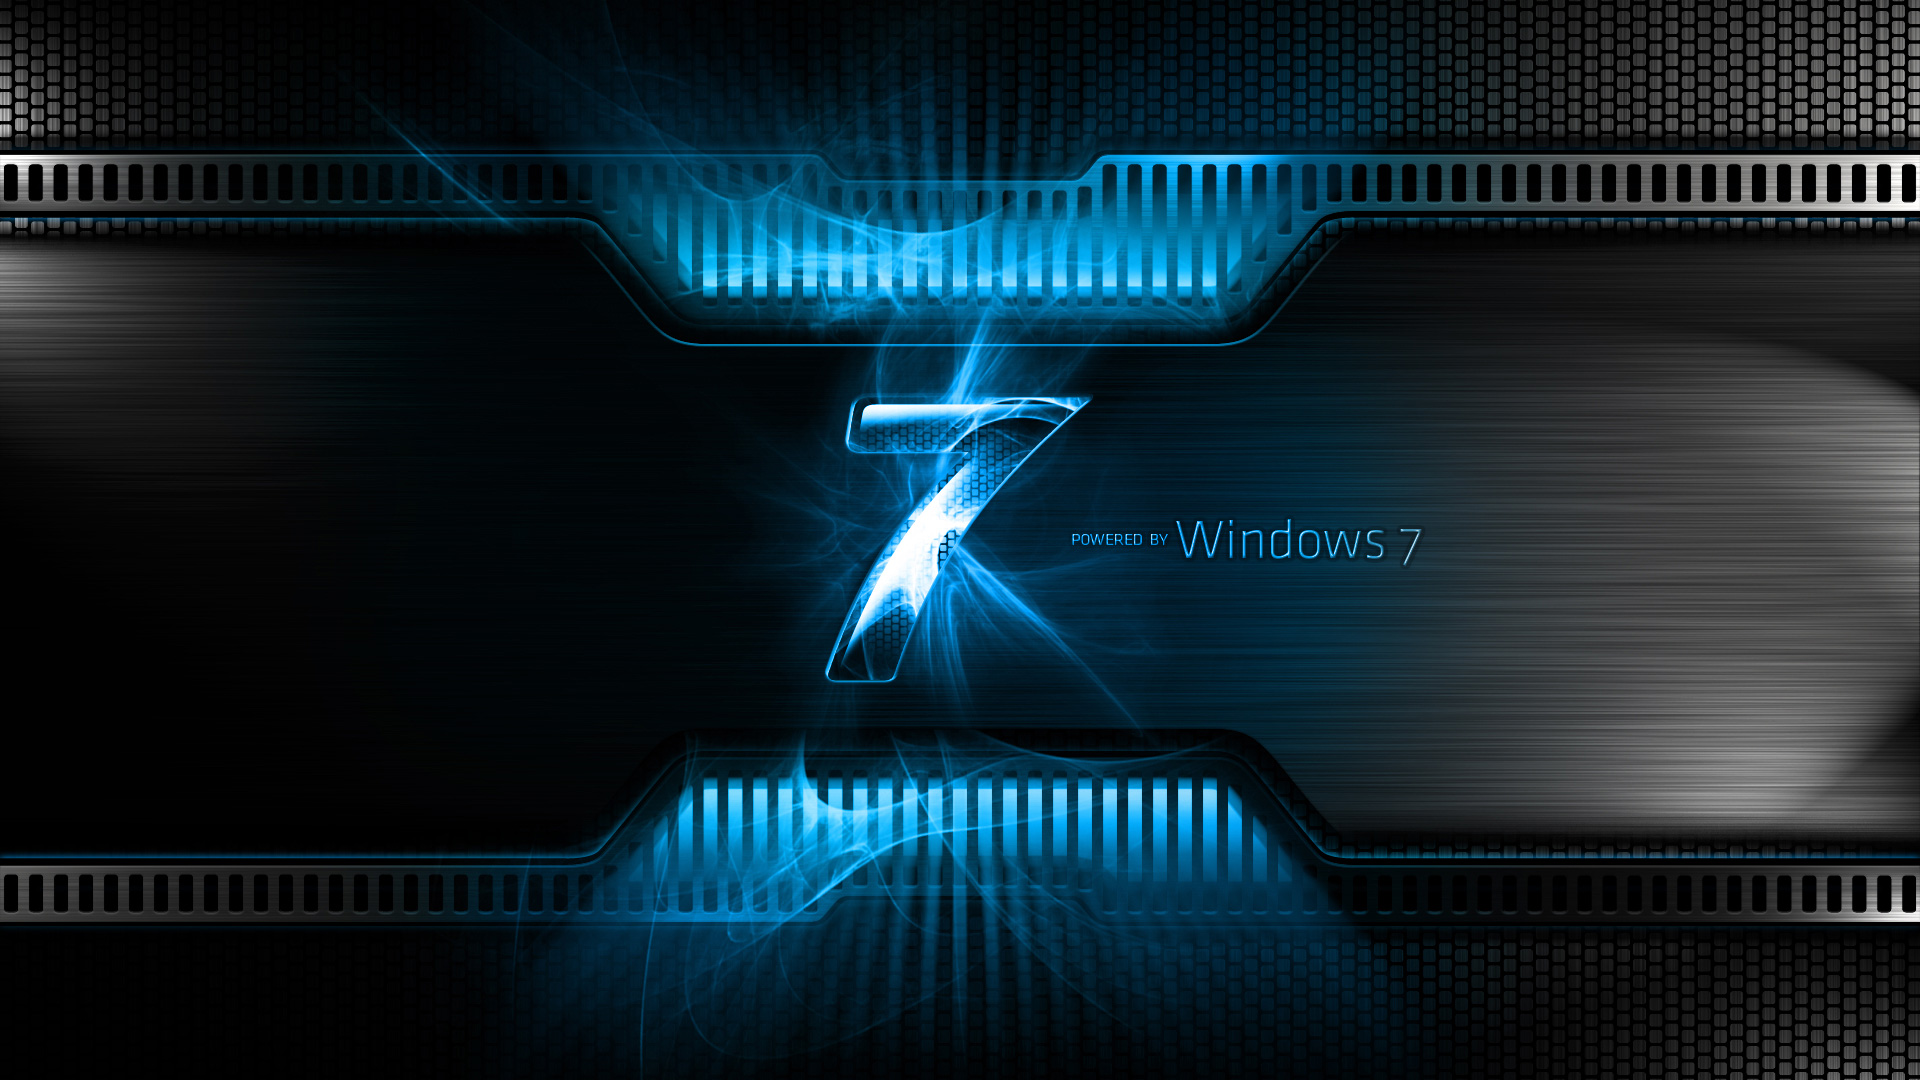 Cool Windows 7 Abstract Exclusive HD Wallpapers 1686 1920x1080